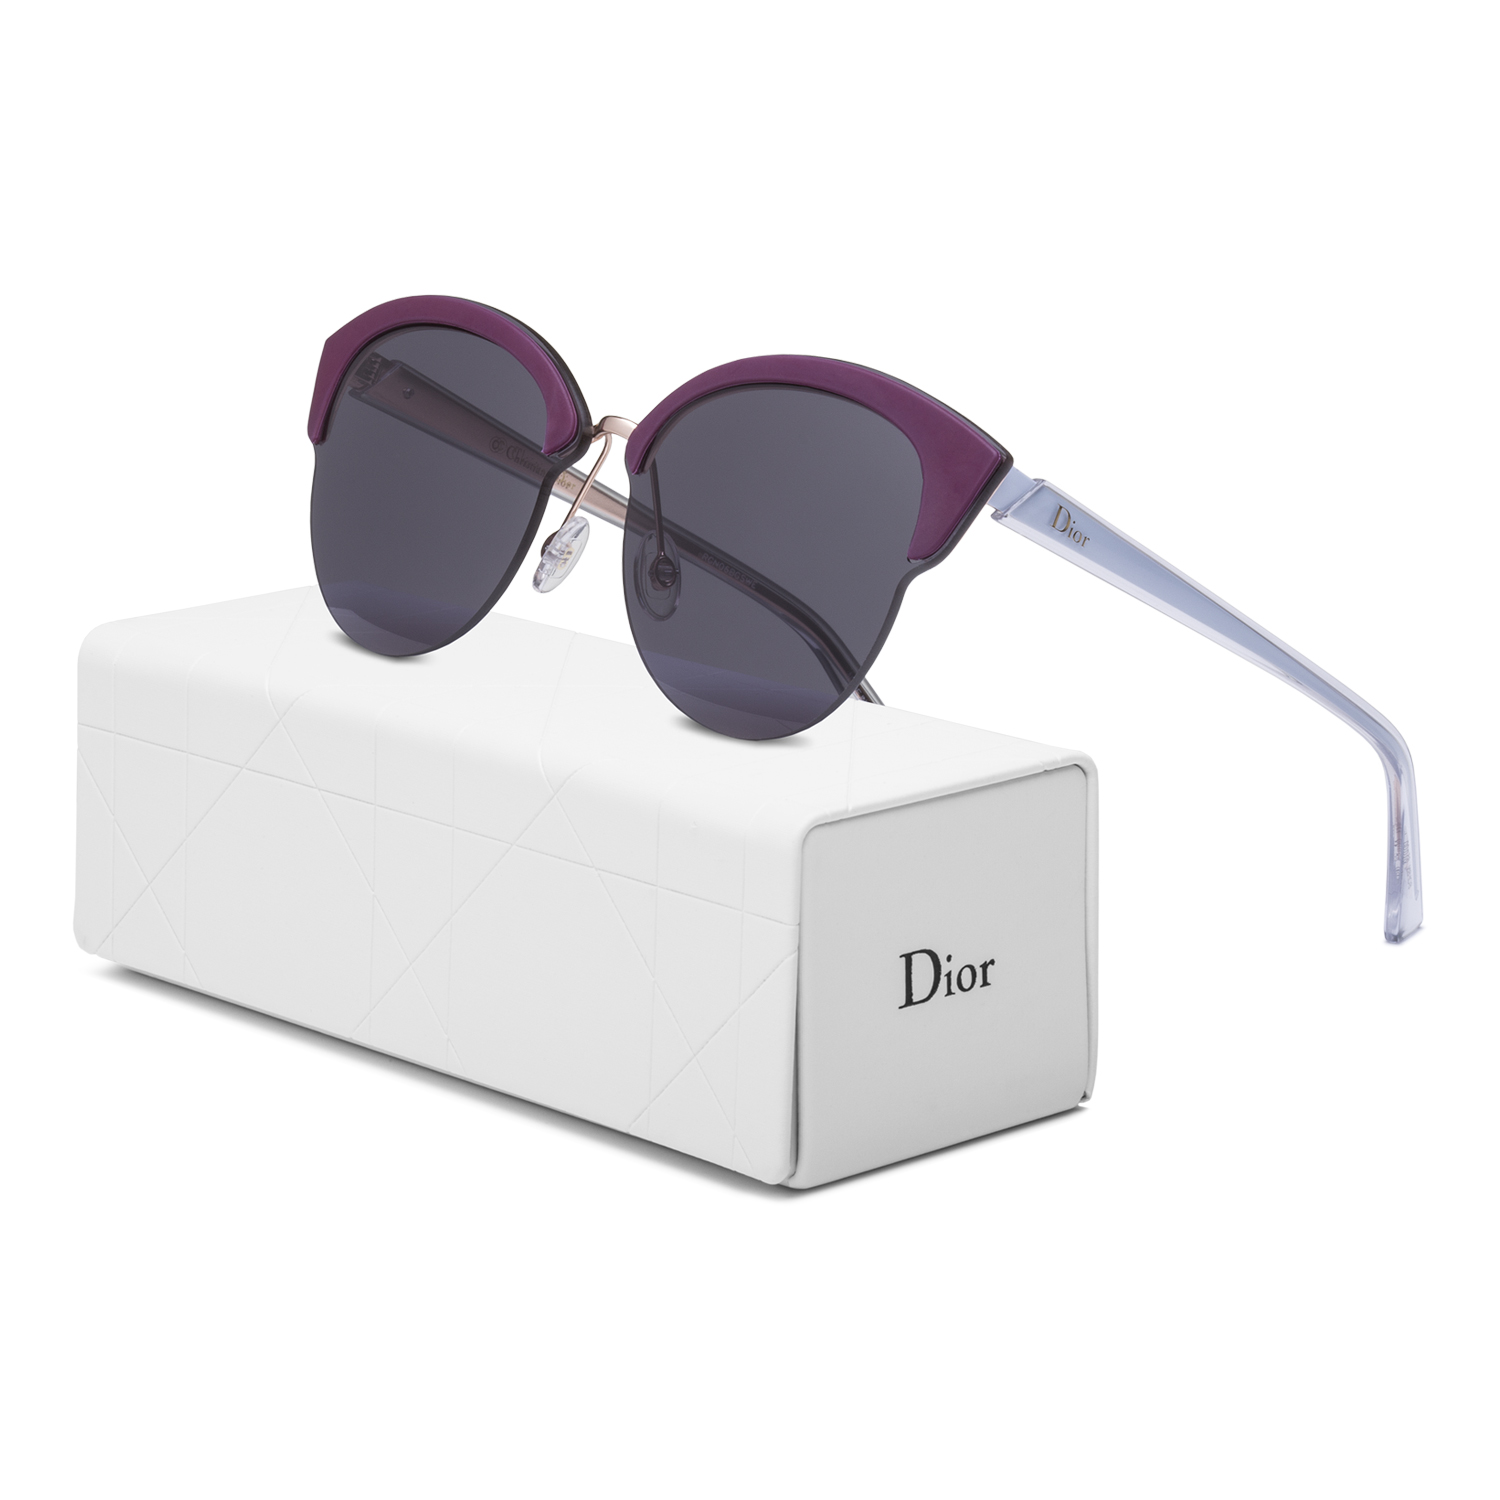 799ed85103 Dior Sunglasses Sale Ebay